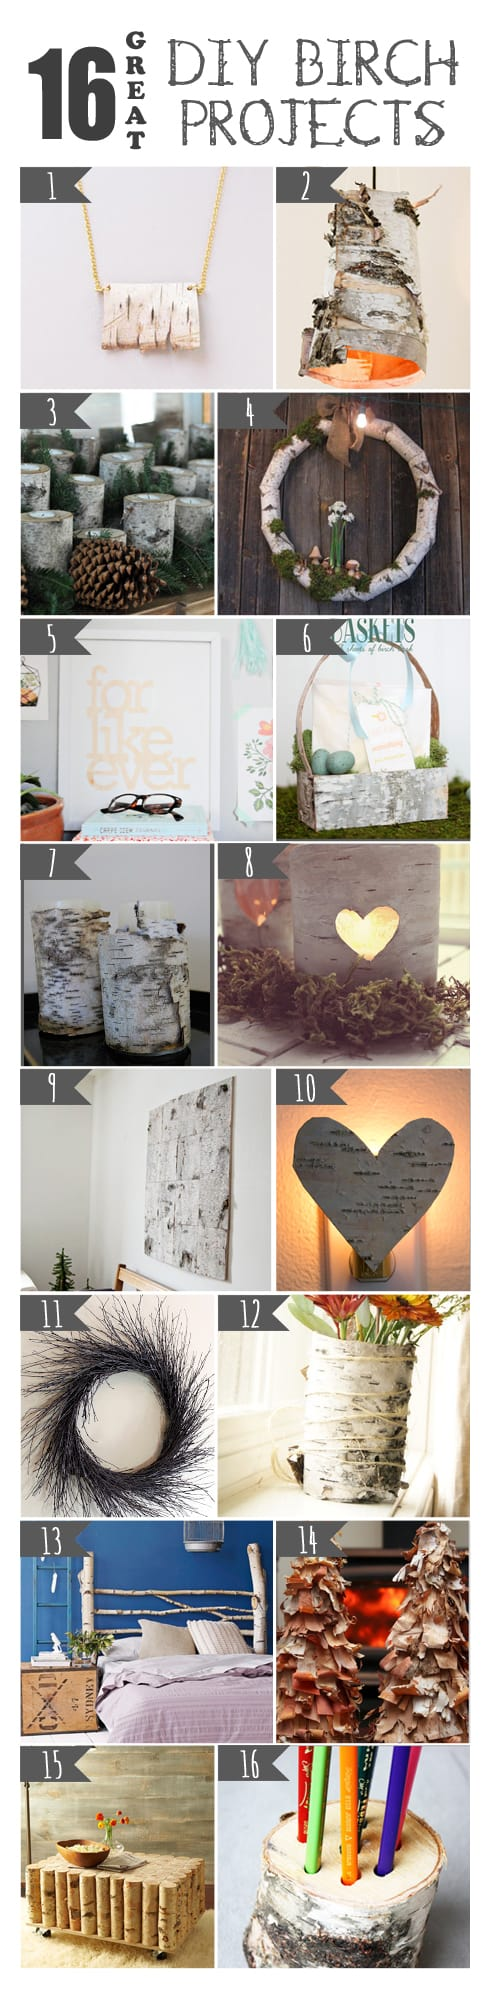 16 Great DIY Birch Projects